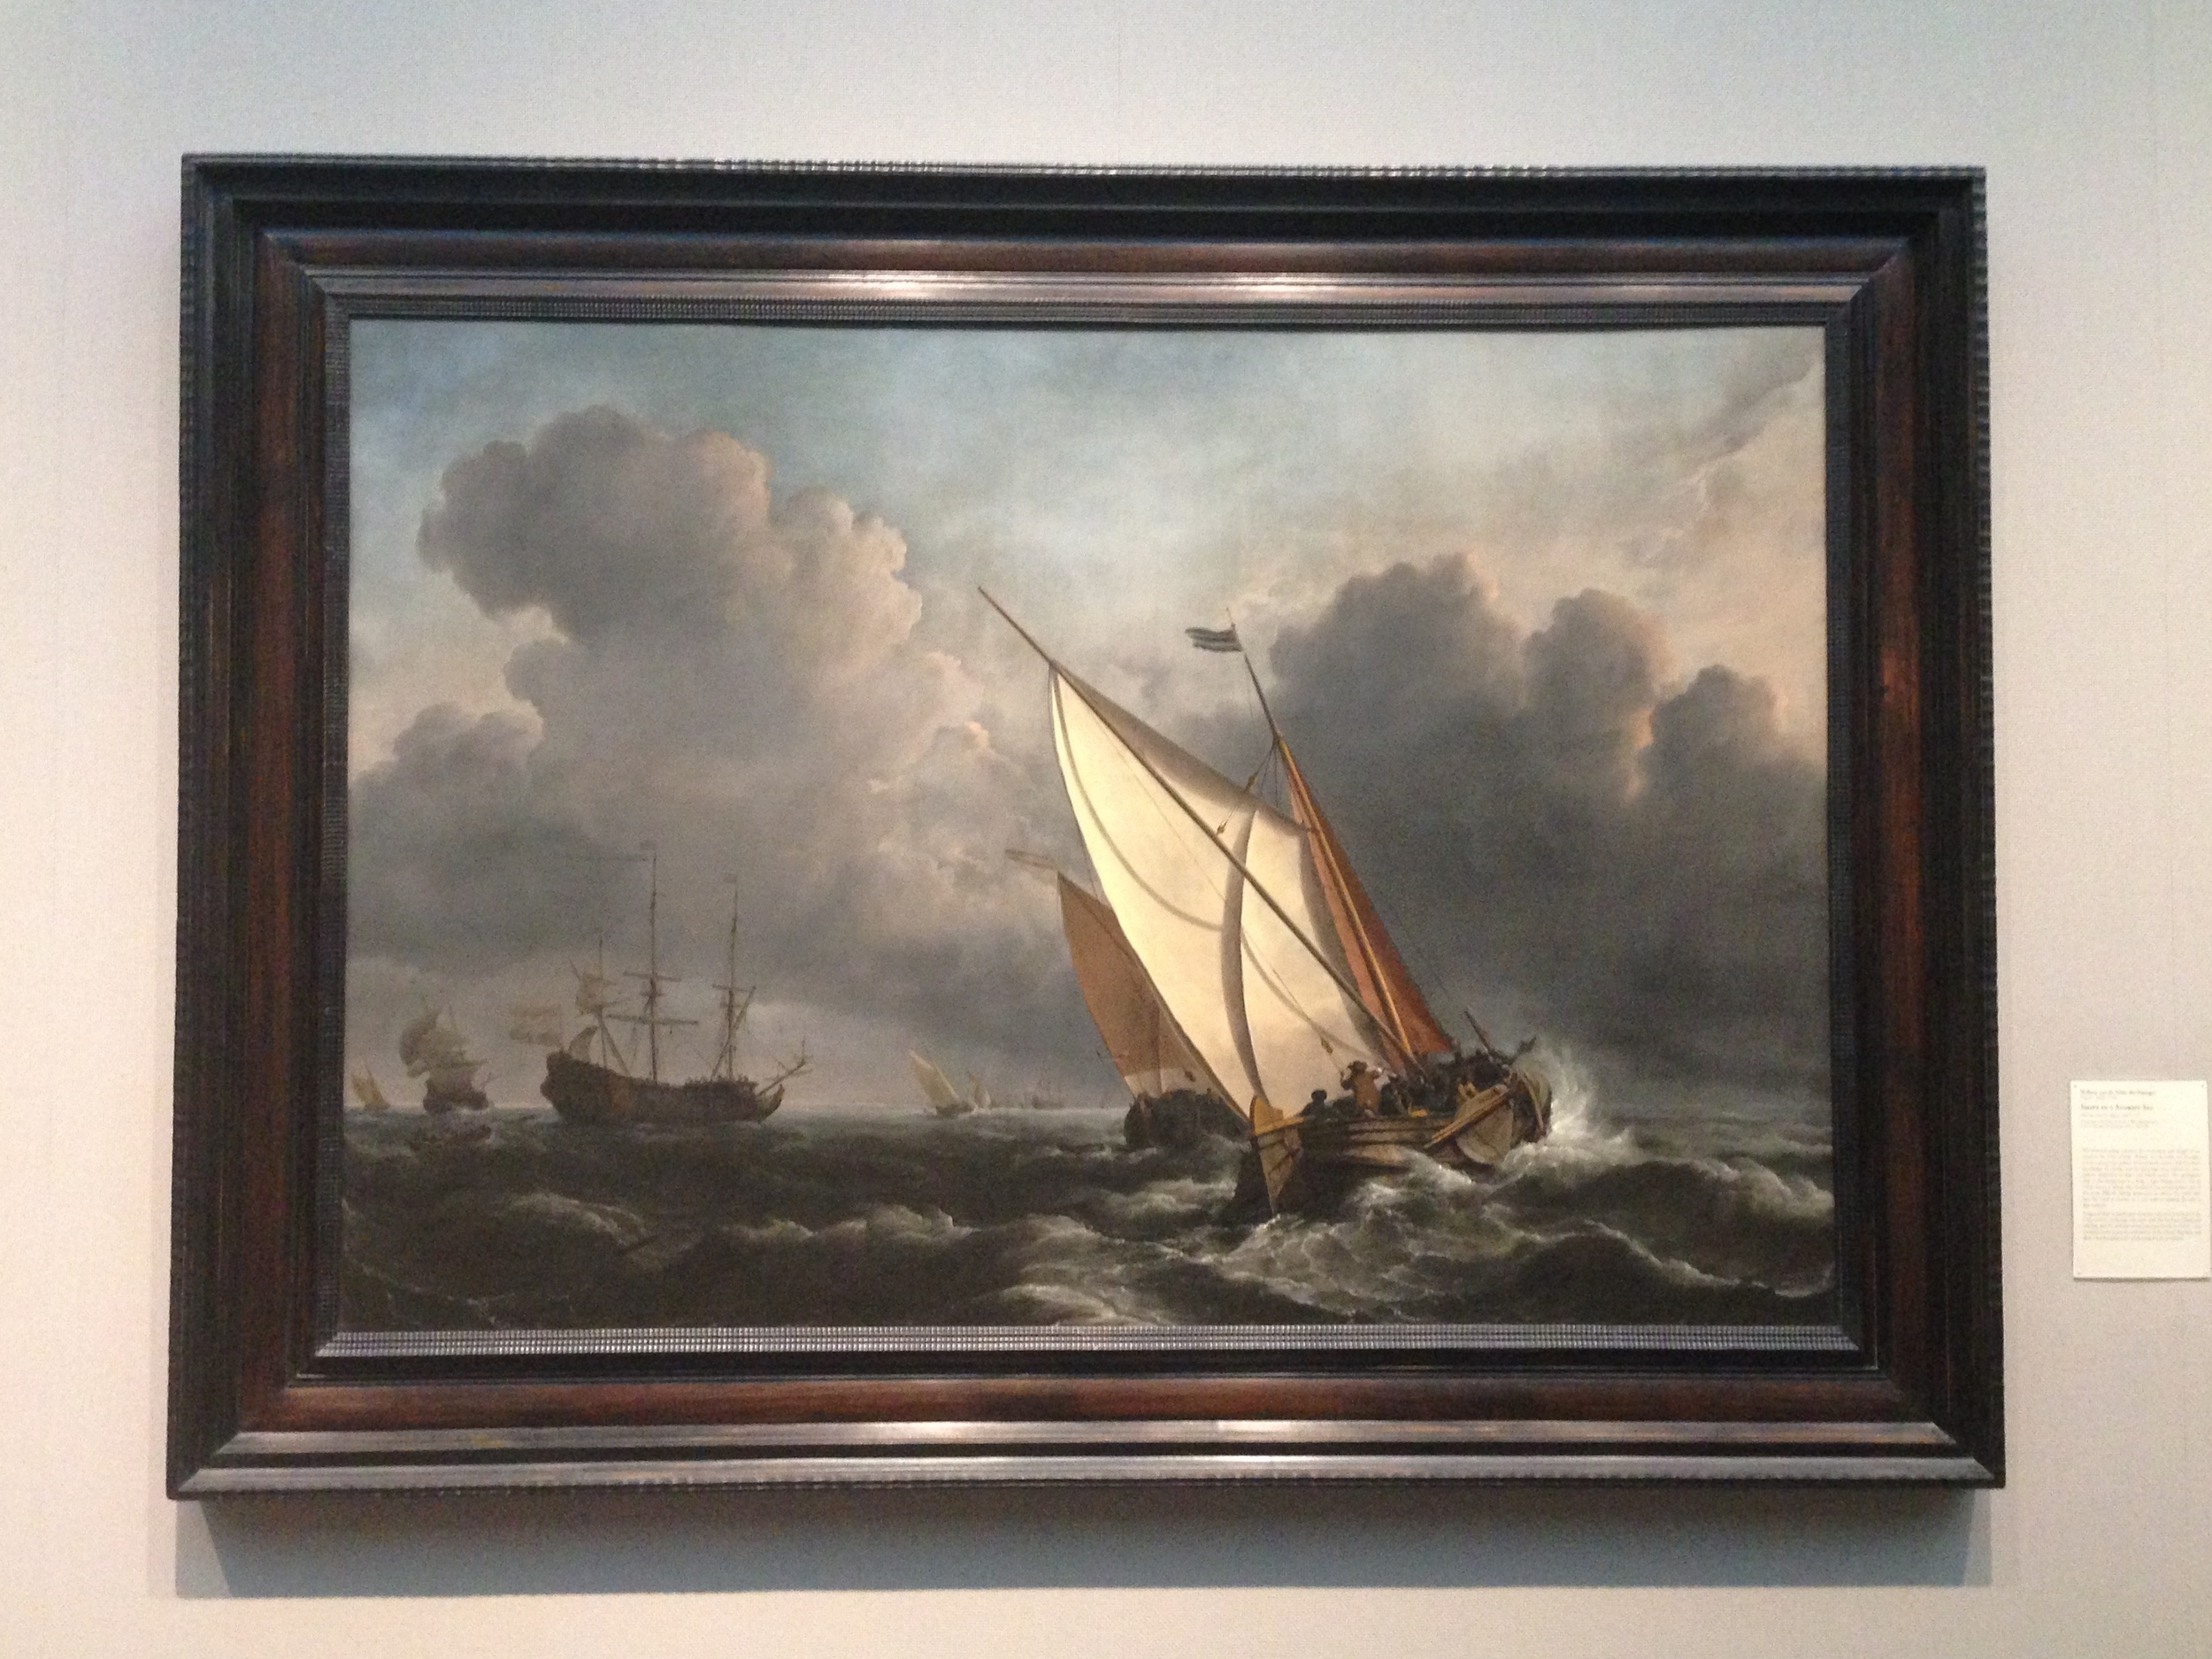 """""""Ships on a Stormy Sea"""" (1672) by William van de Welde the Younger   I'm a big fan of the Dutch Golden Age. Hyperrealistic detail, mastery of reflection, and a fascination with nature characterize many Dutch landscapes of this era.""""Ships"""" is no exception: I felt simultaneously awed by the might of the sea and emotionally connected with the struggles of the boaters battling it. More information about William van de Welde the Younger  here ."""